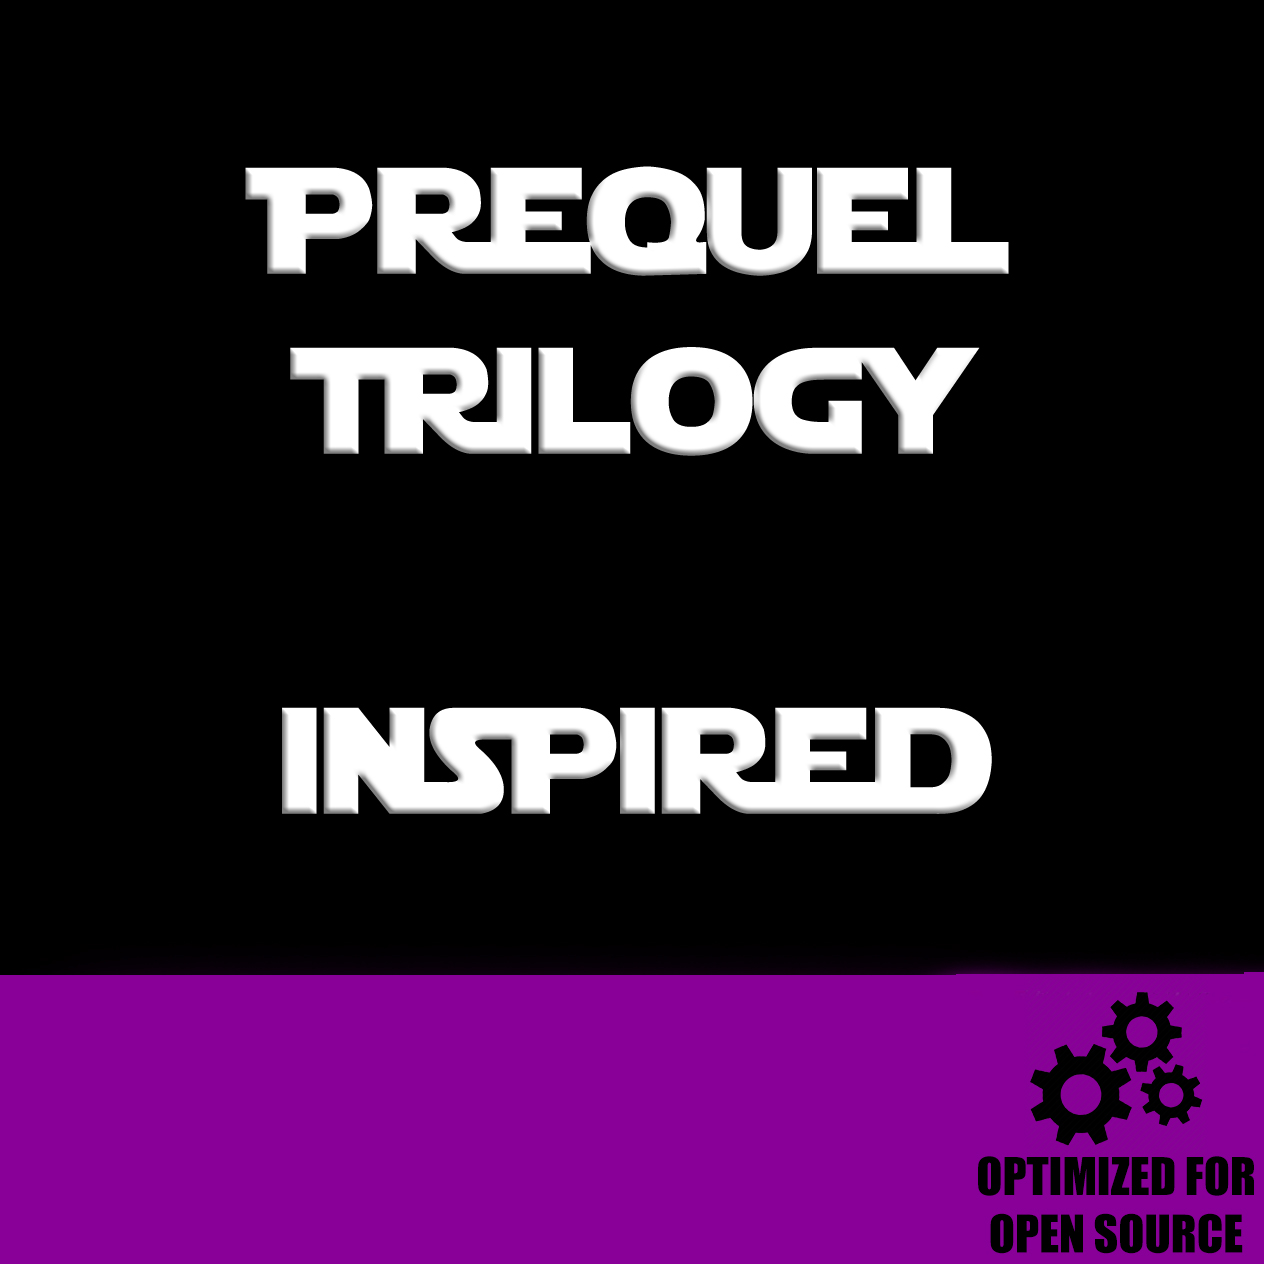 Prequel Trilogy Inspired for Open Source